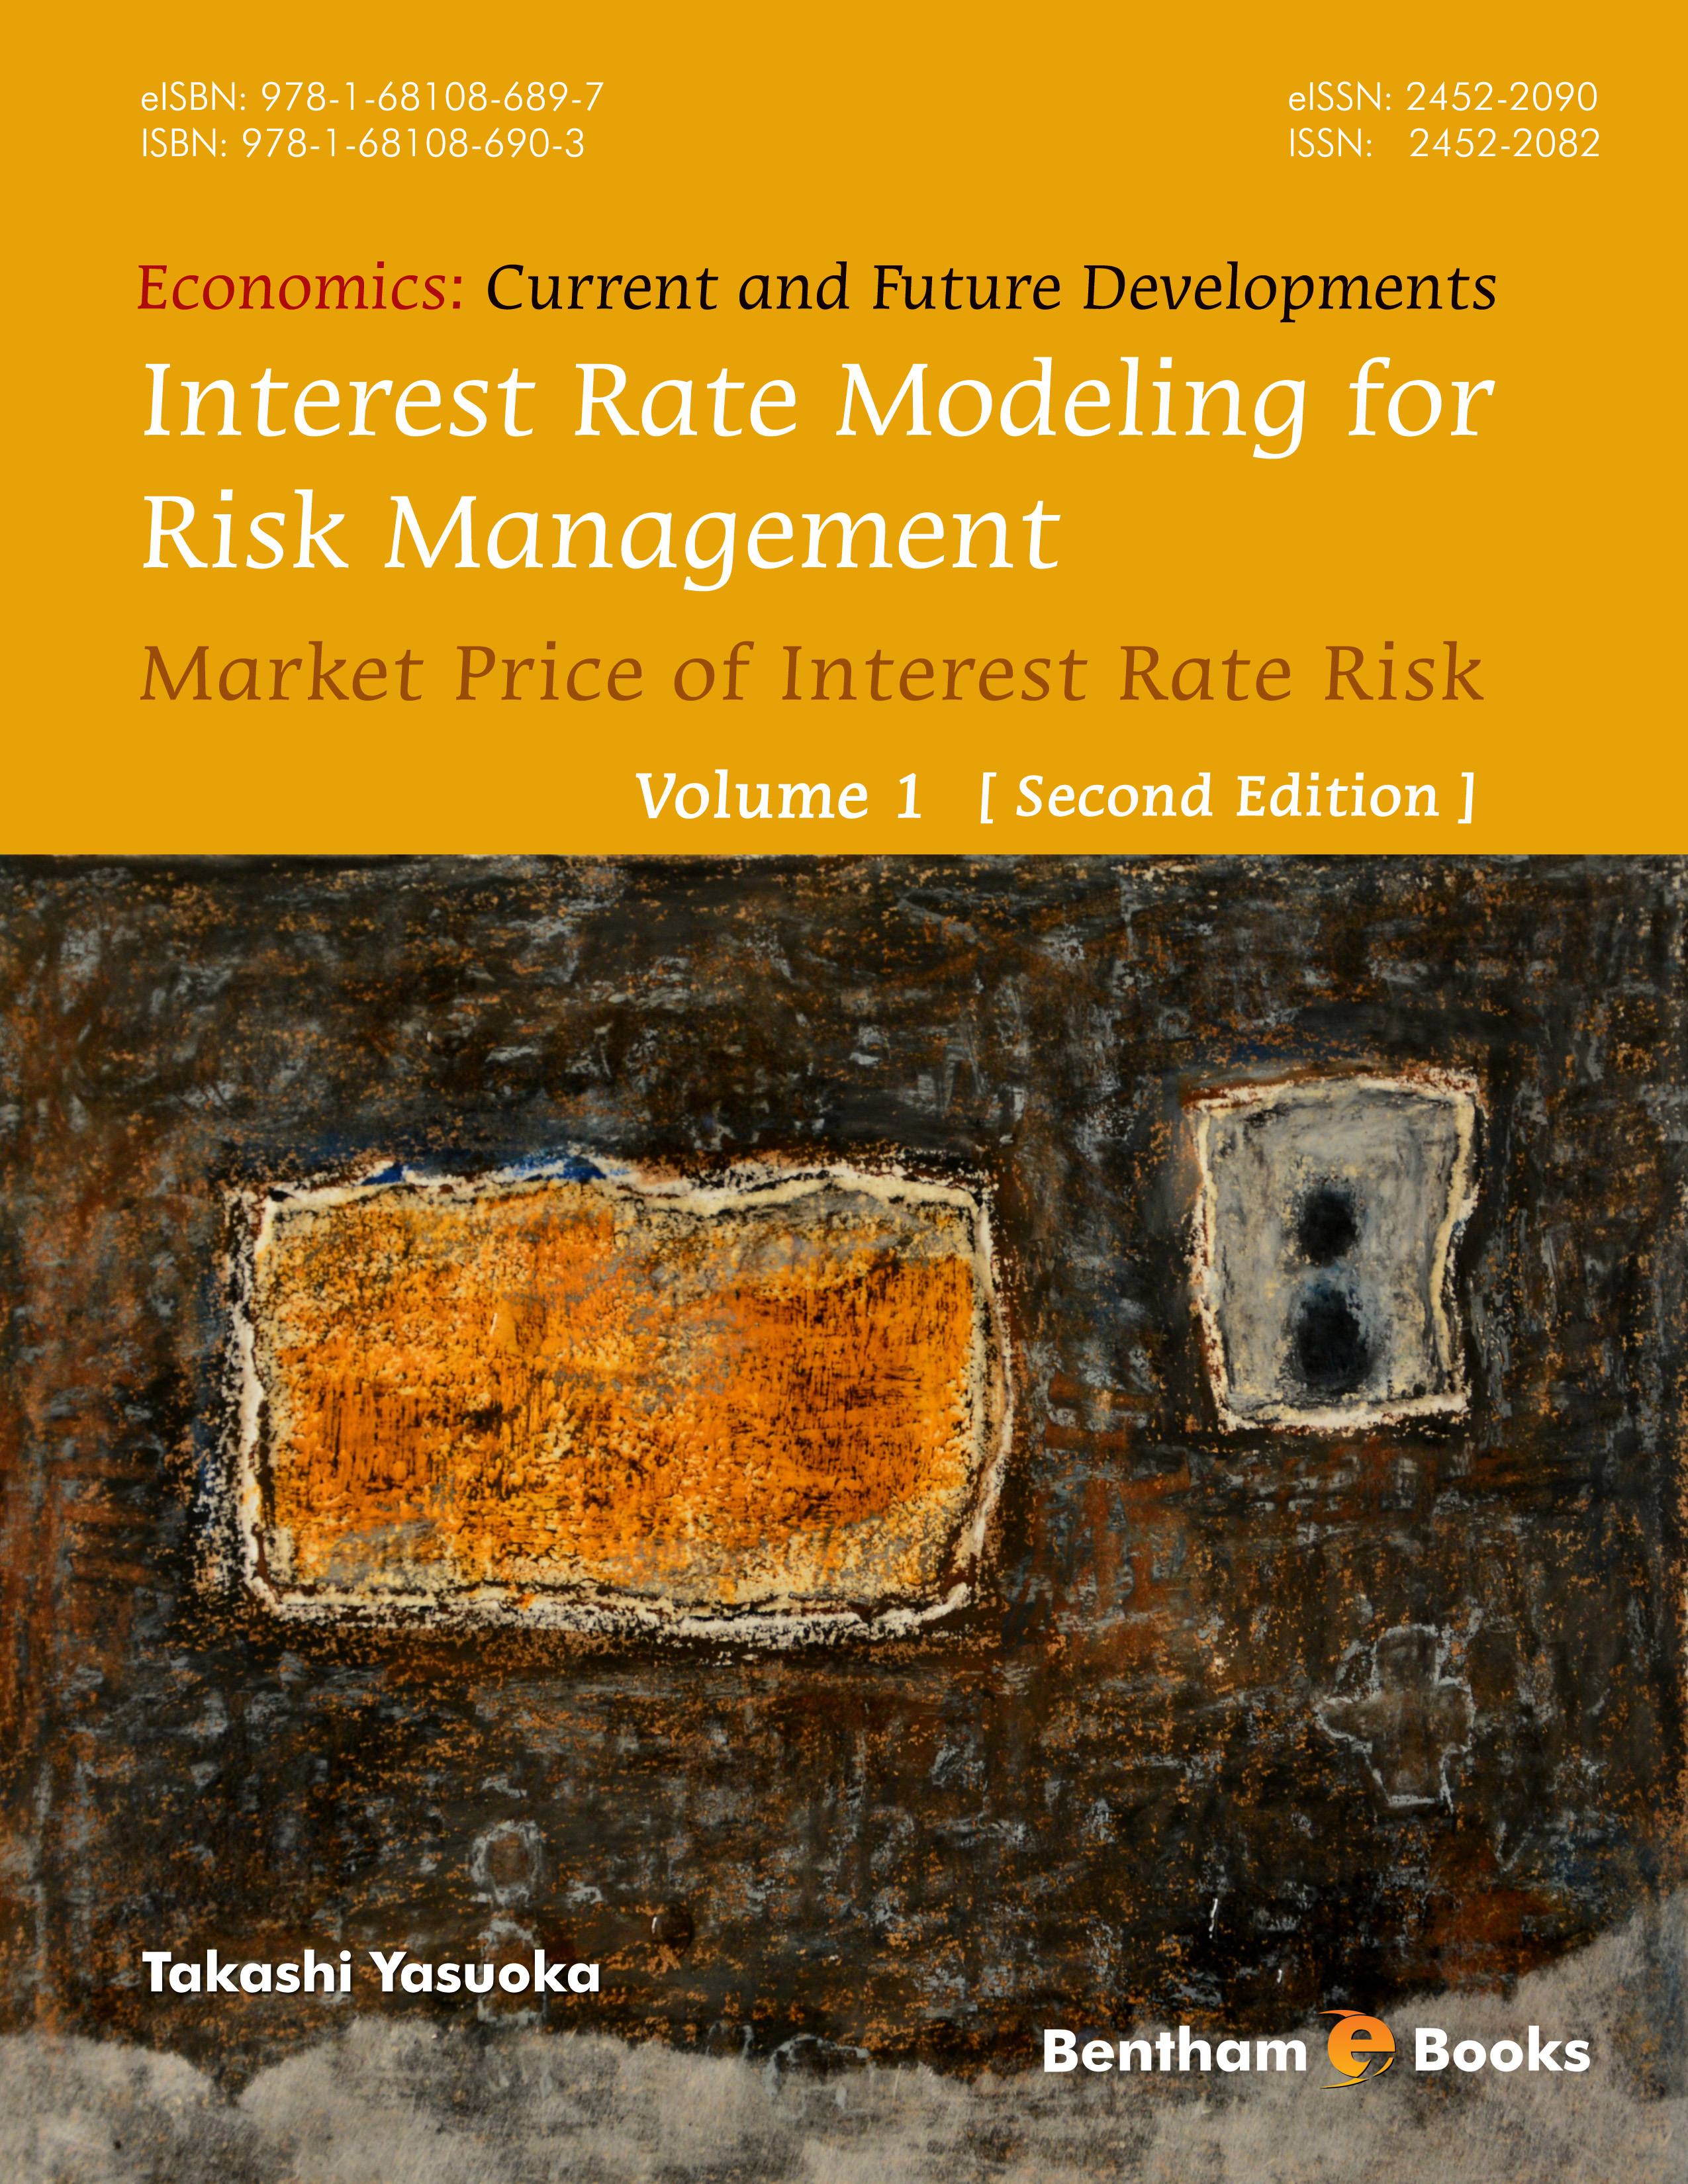 Interest Rate Modeling for Risk Management: Market Price of Interest Rate Risk (Second Edition)